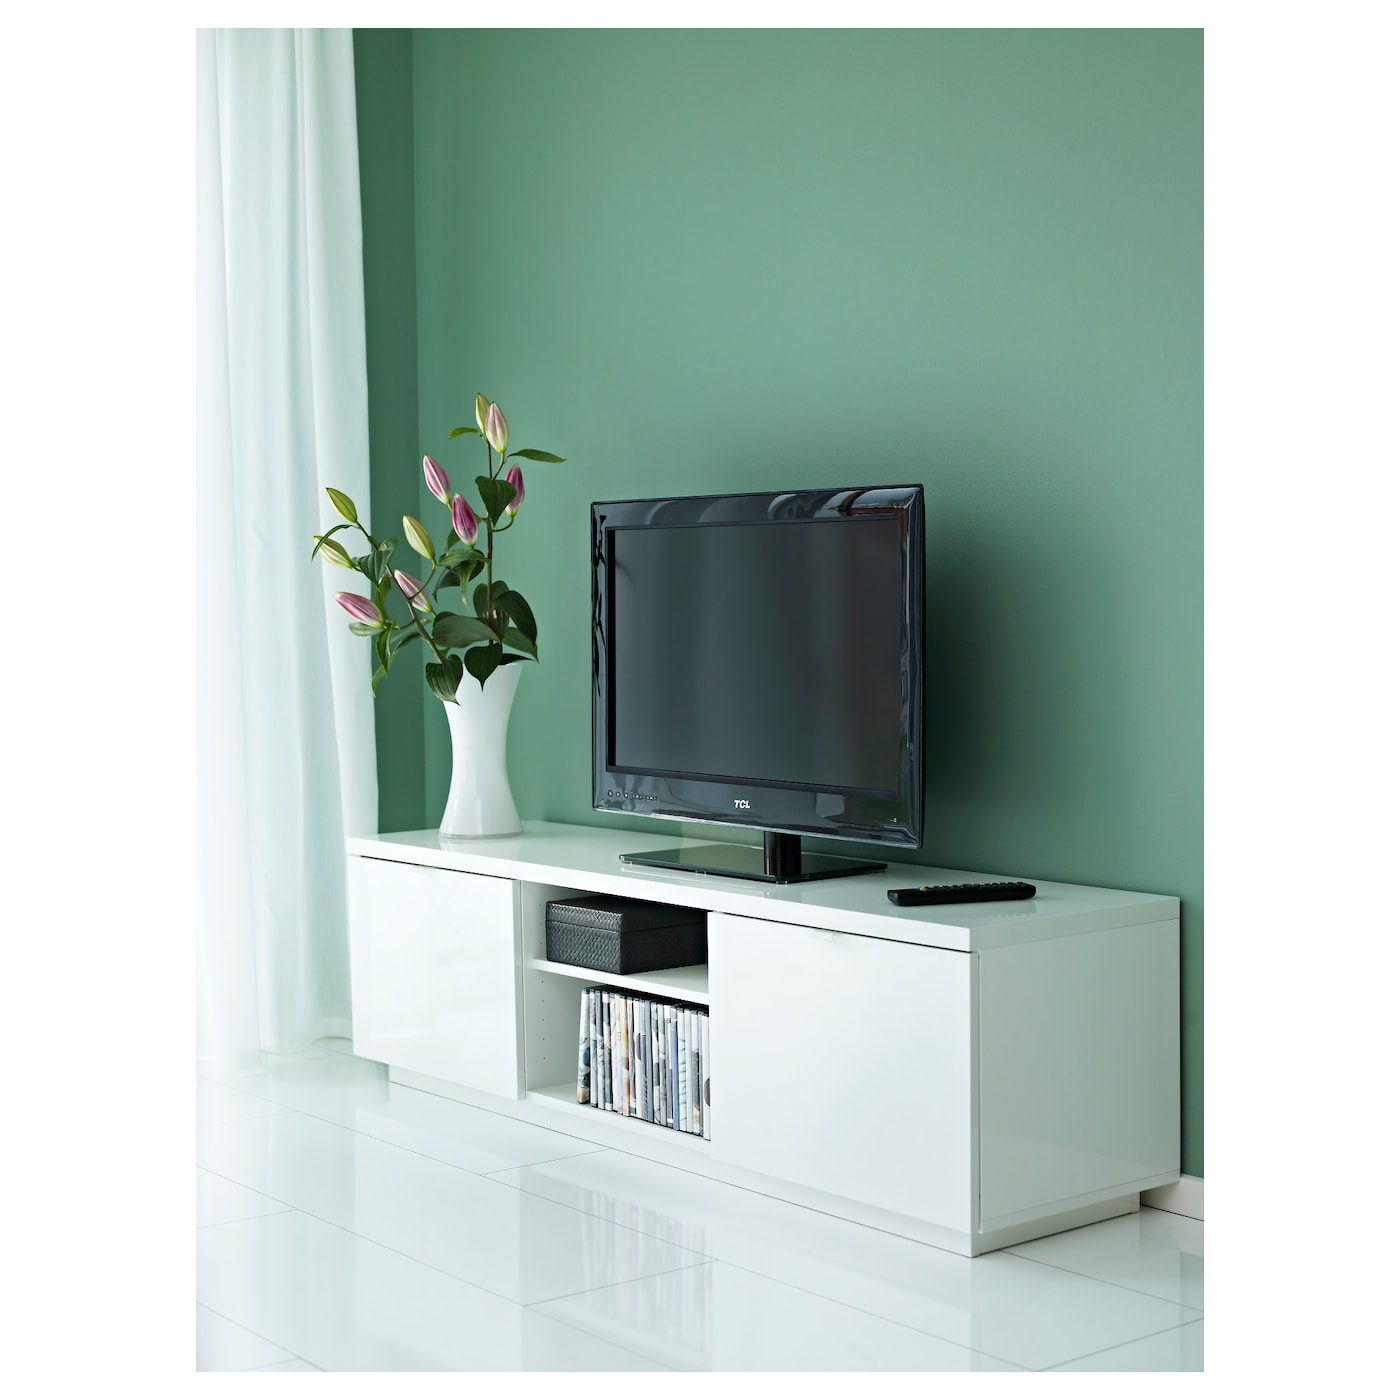 By 197 S Tv Bench High Gloss White 160 X 42 X 45 Cm Ikea